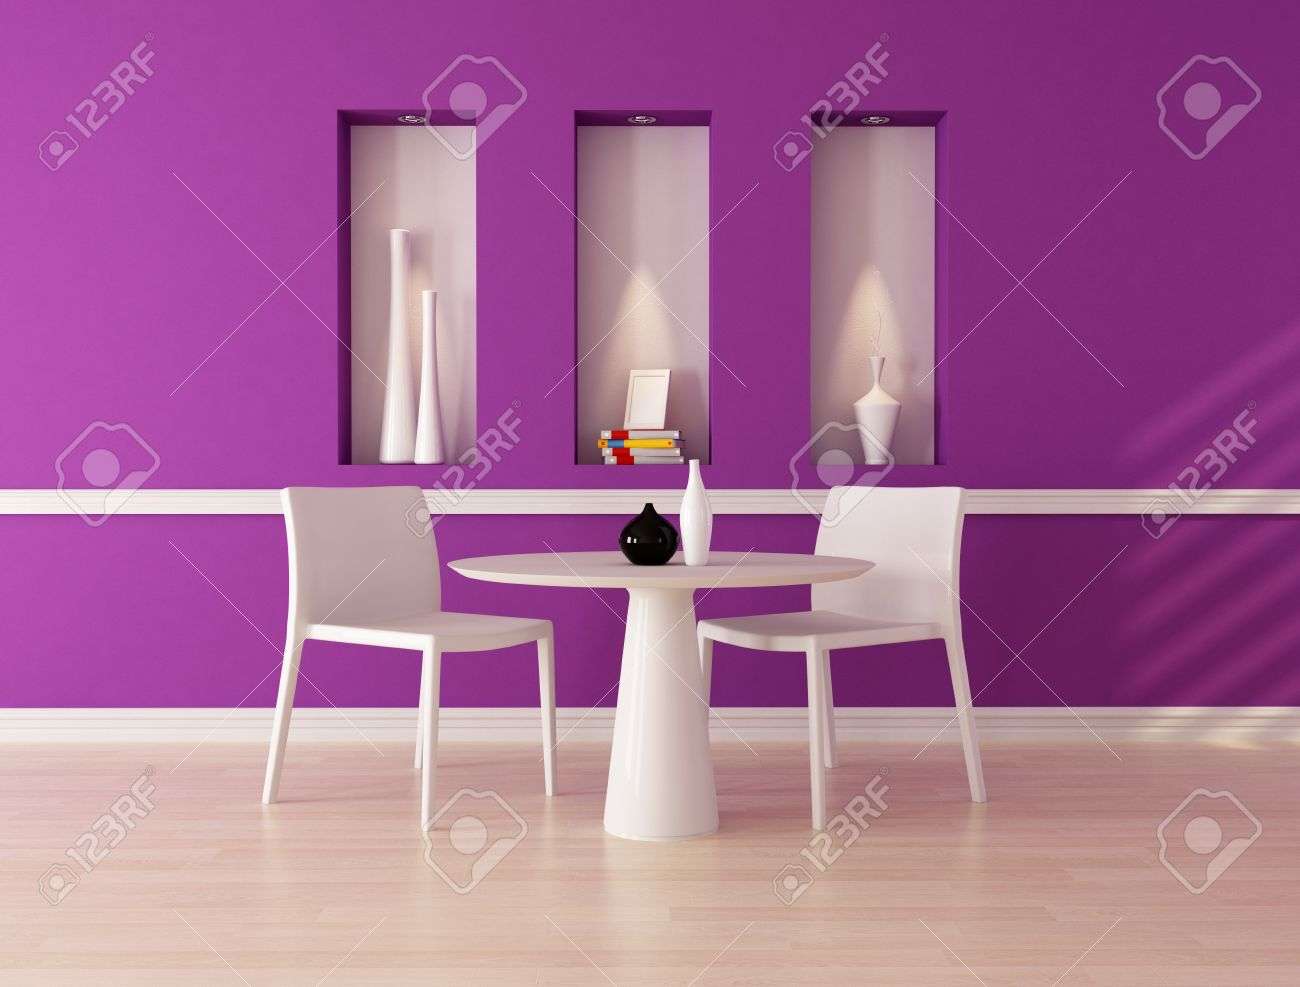 minimalist purple dining room with niche - rendering Stock Photo - 9277271